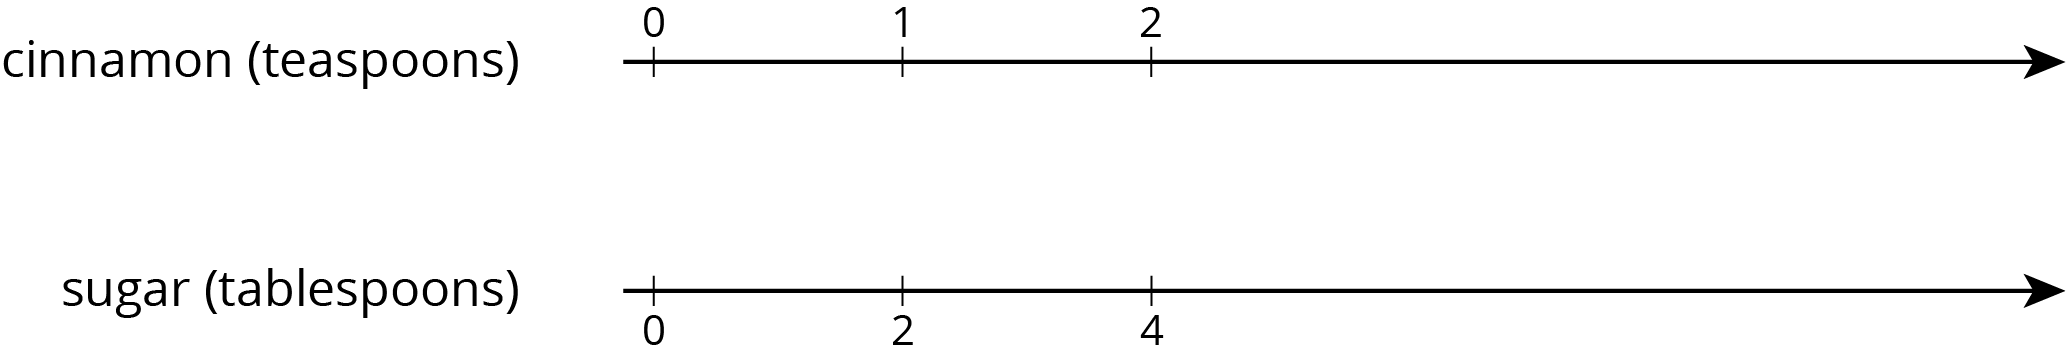 "A double number line with 3 evenly spaced tick marks. The top number line is labeled ""cinnamon in teaspoons"" and starting with the first tick mark 0, 1, and 2 are labeled. The bottom number line is labeled ""sugar in teaspoons"" and starting with the first tick mark 0, 2, and 4 are labeled."